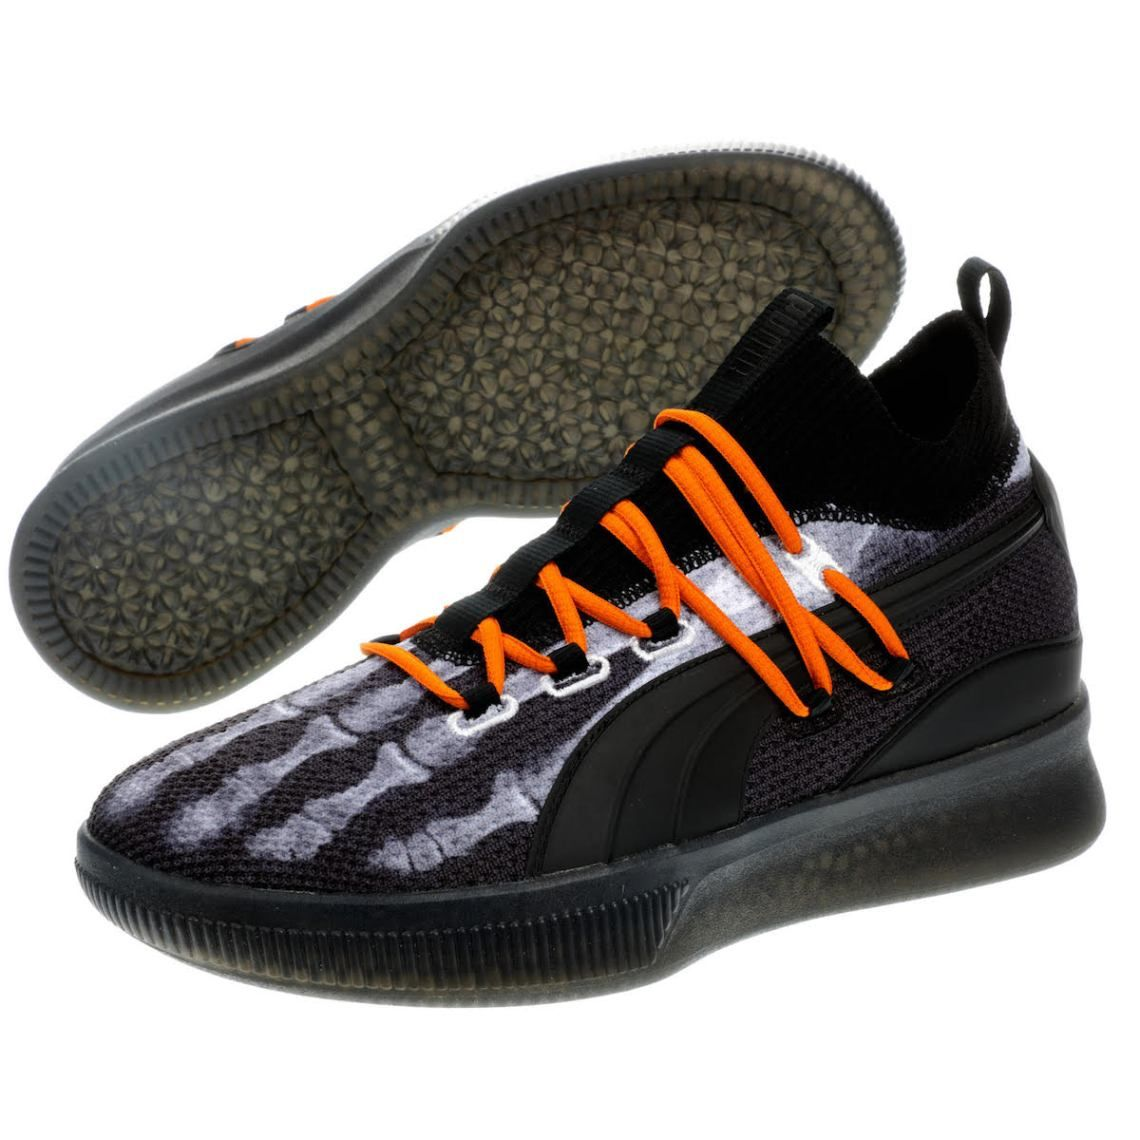 Details about Puma Clyde Court Disrupt Basketball Shoe Sneakers  Black Purple 191715-06 Size 11 in 2019  806fce7a1